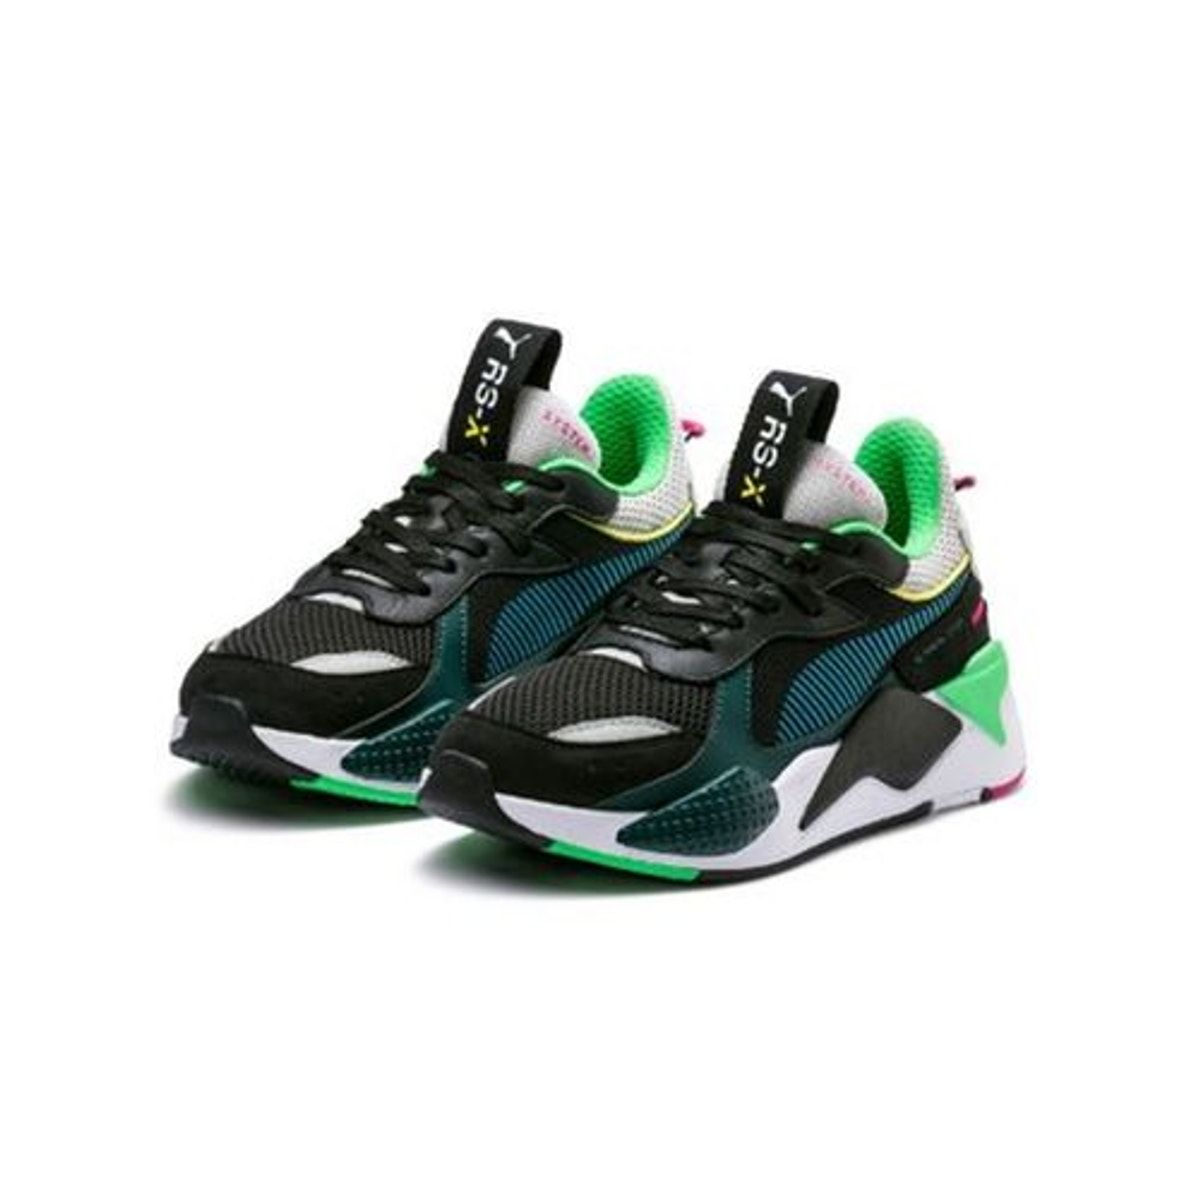 Basket Puma Rs X Toys Ref. 369449 01 Taille : 42;43;44